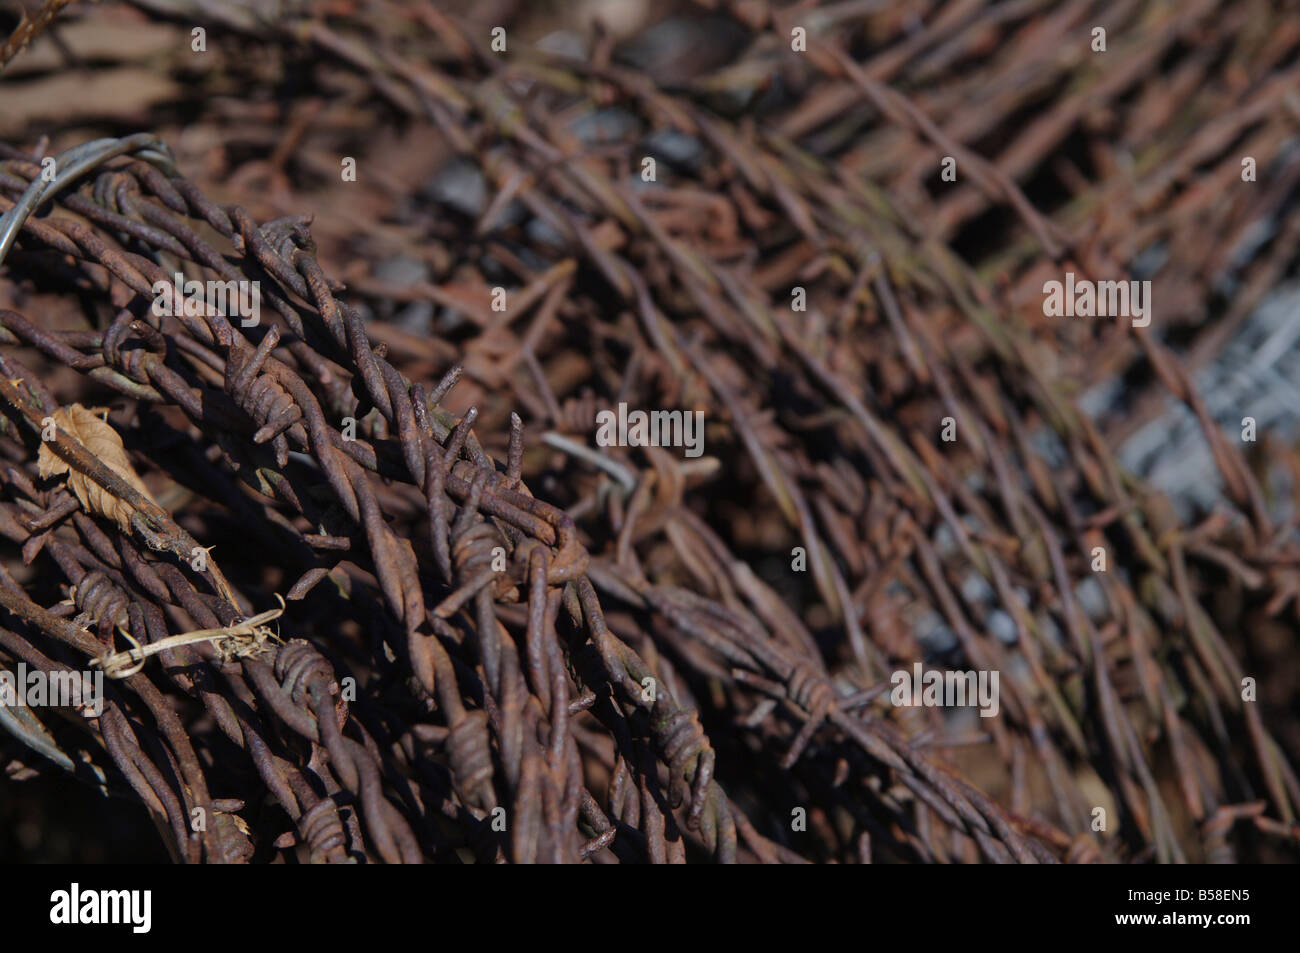 close up photo of rusty barbwire - Stock Image